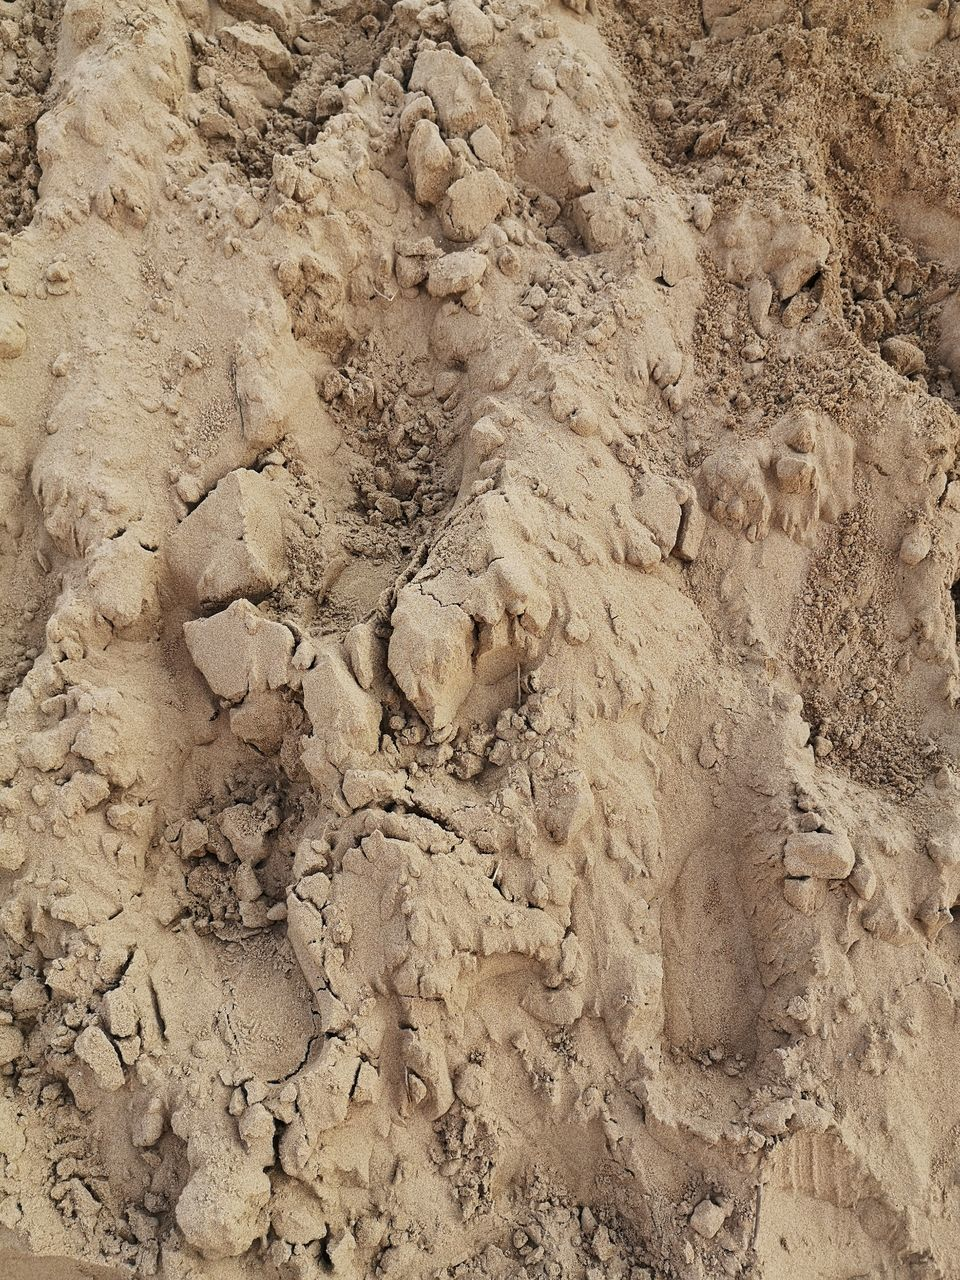 dirt, no people, high angle view, land, full frame, mud, nature, day, close-up, backgrounds, paw print, pattern, outdoors, dirty, sand, animal track, textured, environment, landscape, tranquility, climate, arid climate